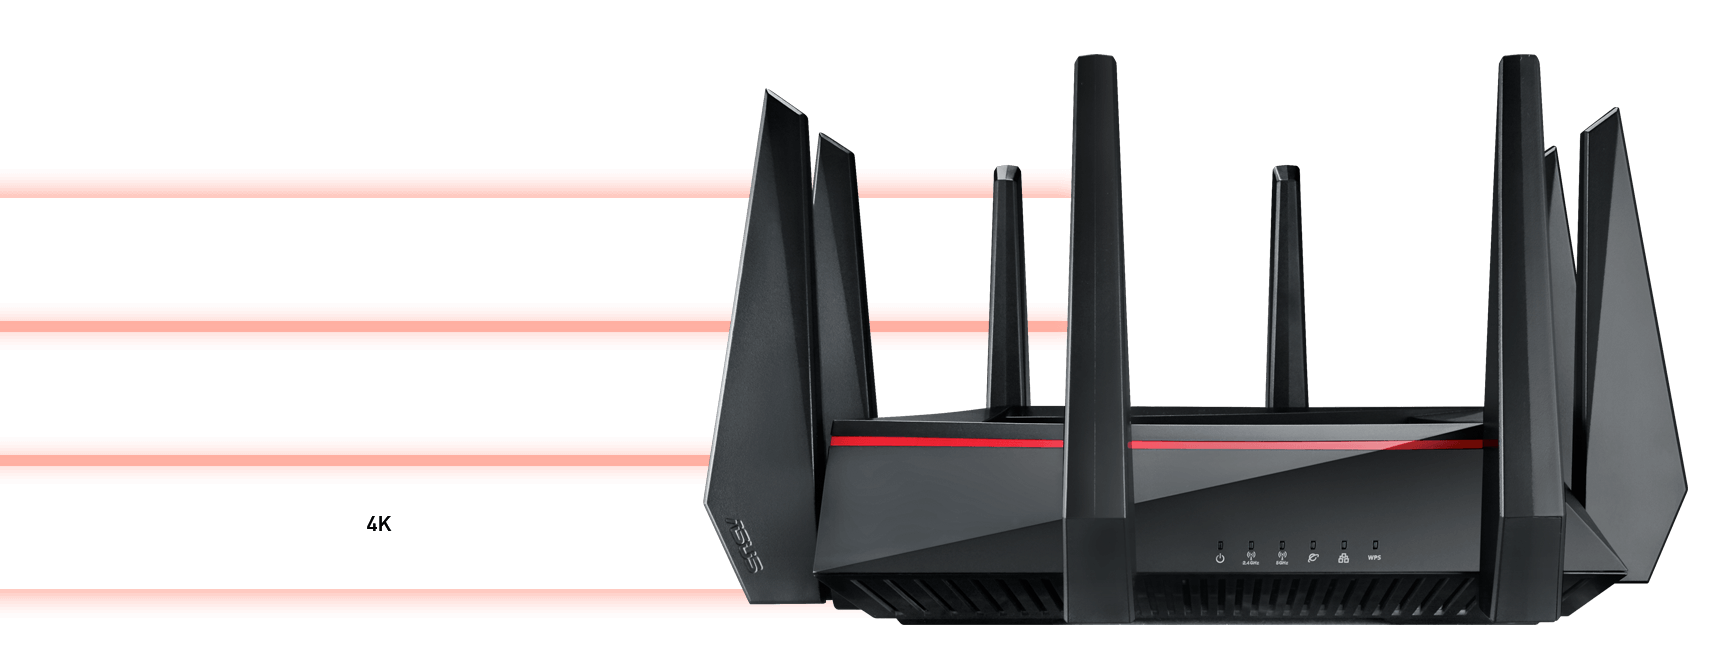 Rt Ac5300 Networking Asus Usa Wireless Modem Router Diagram This Means You Get Better Range And Faster More Reliable Connections Consistently Without The Need To Manually Re Connect Best Band Available